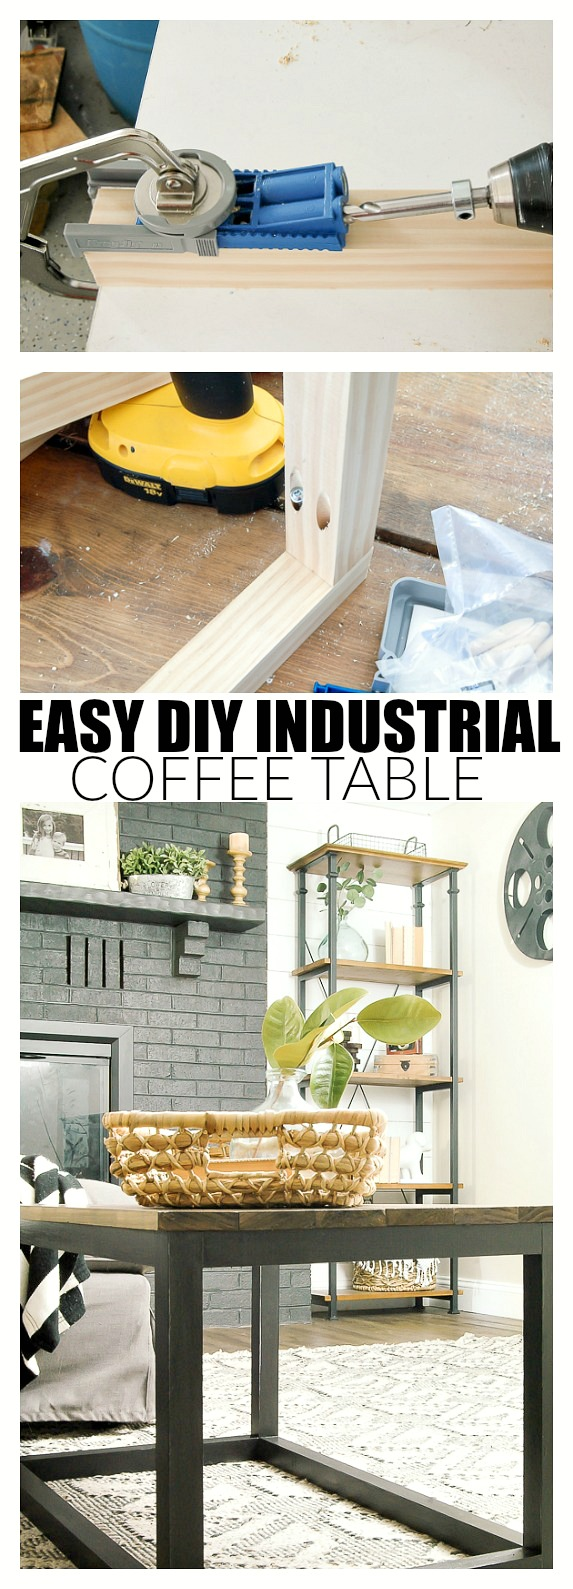 How to build an easy industrial coffee table using the Kreg Jig.